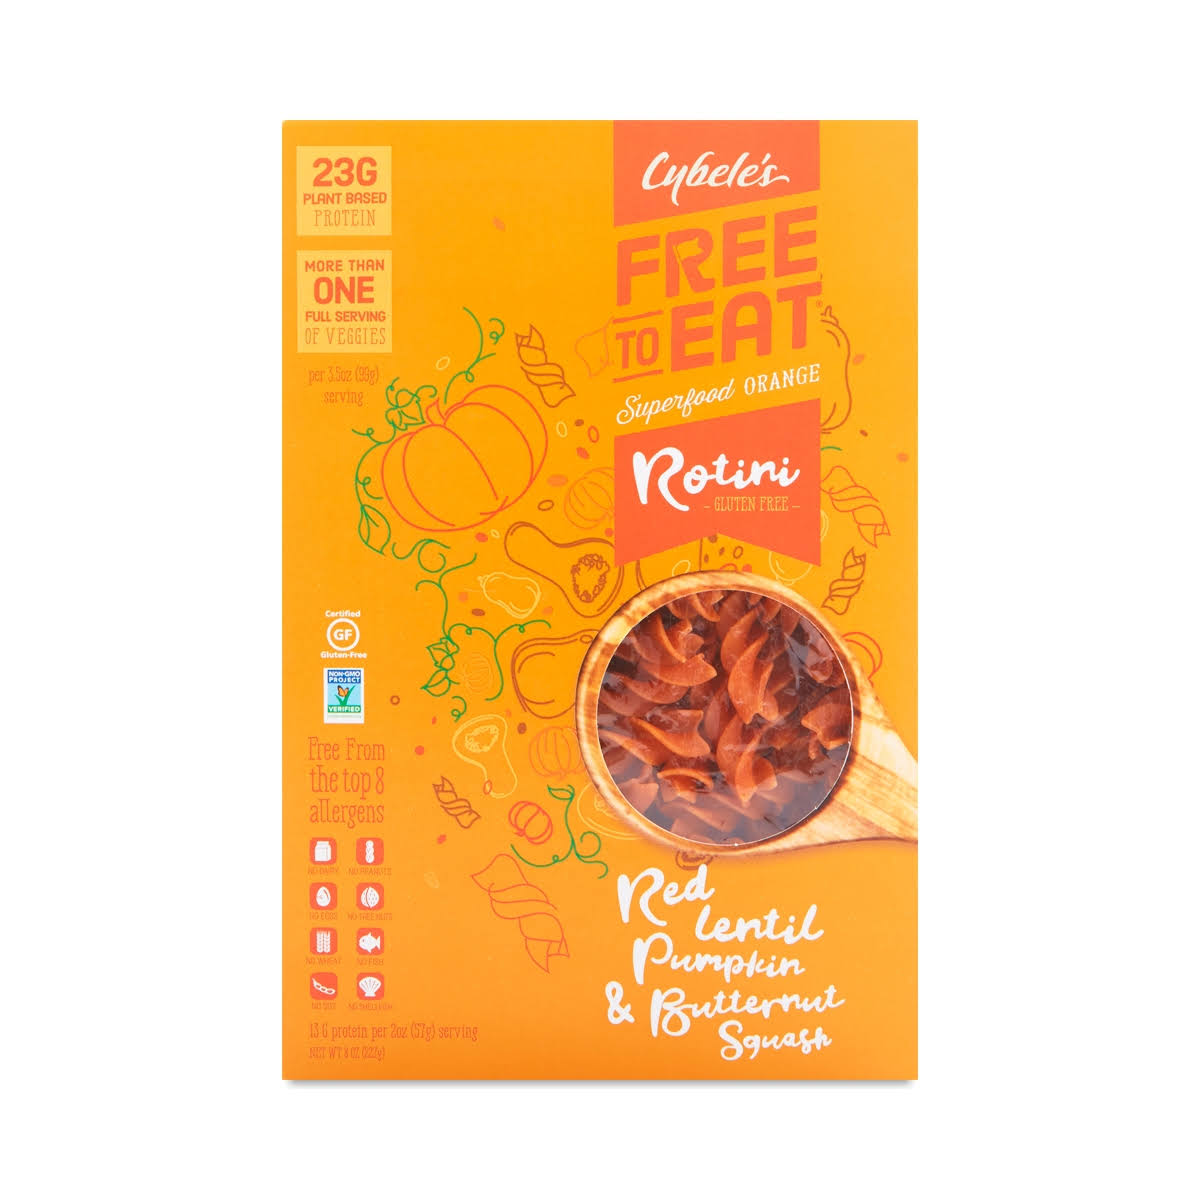 Cybele's Free to Eat Superfood Veggie Pasta - Superfood Orange, 223g